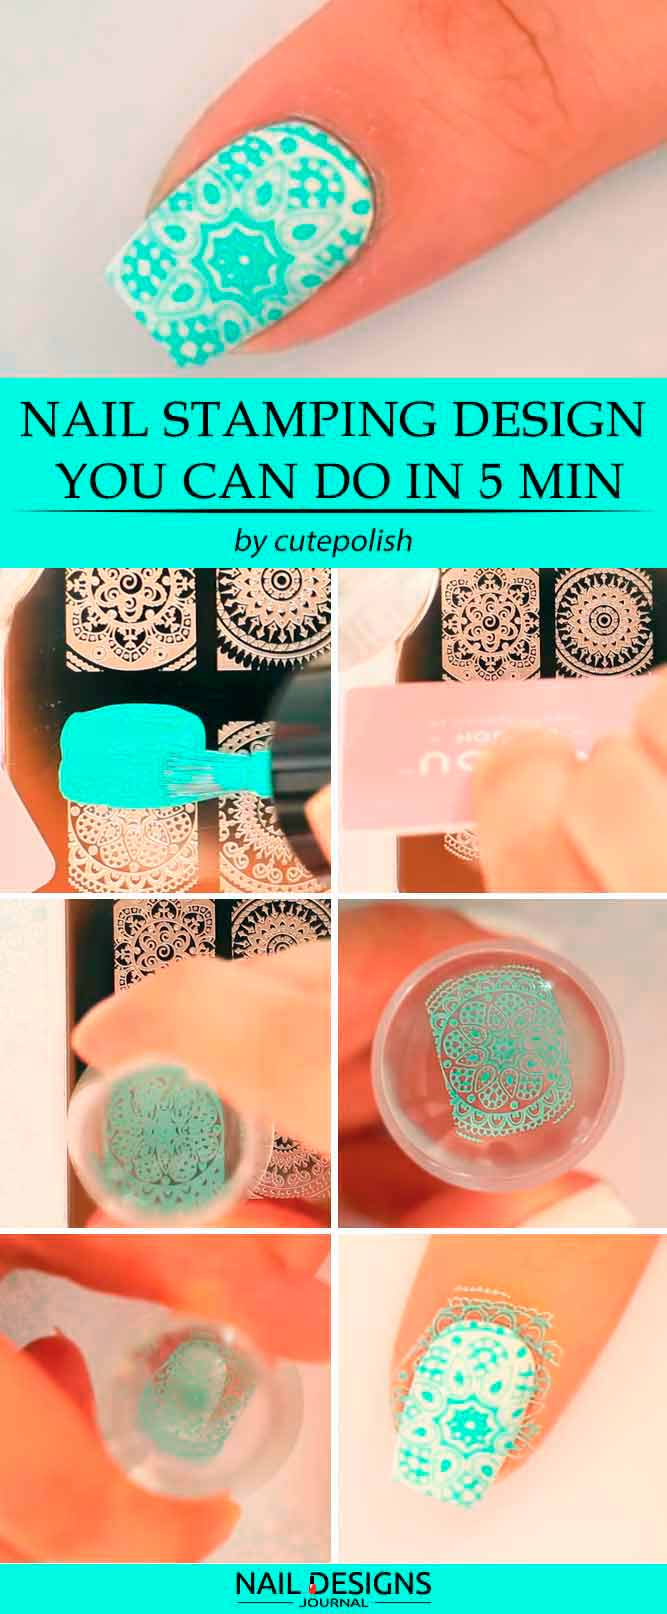 Einfaches Nail Stamping Design in 5 Min.